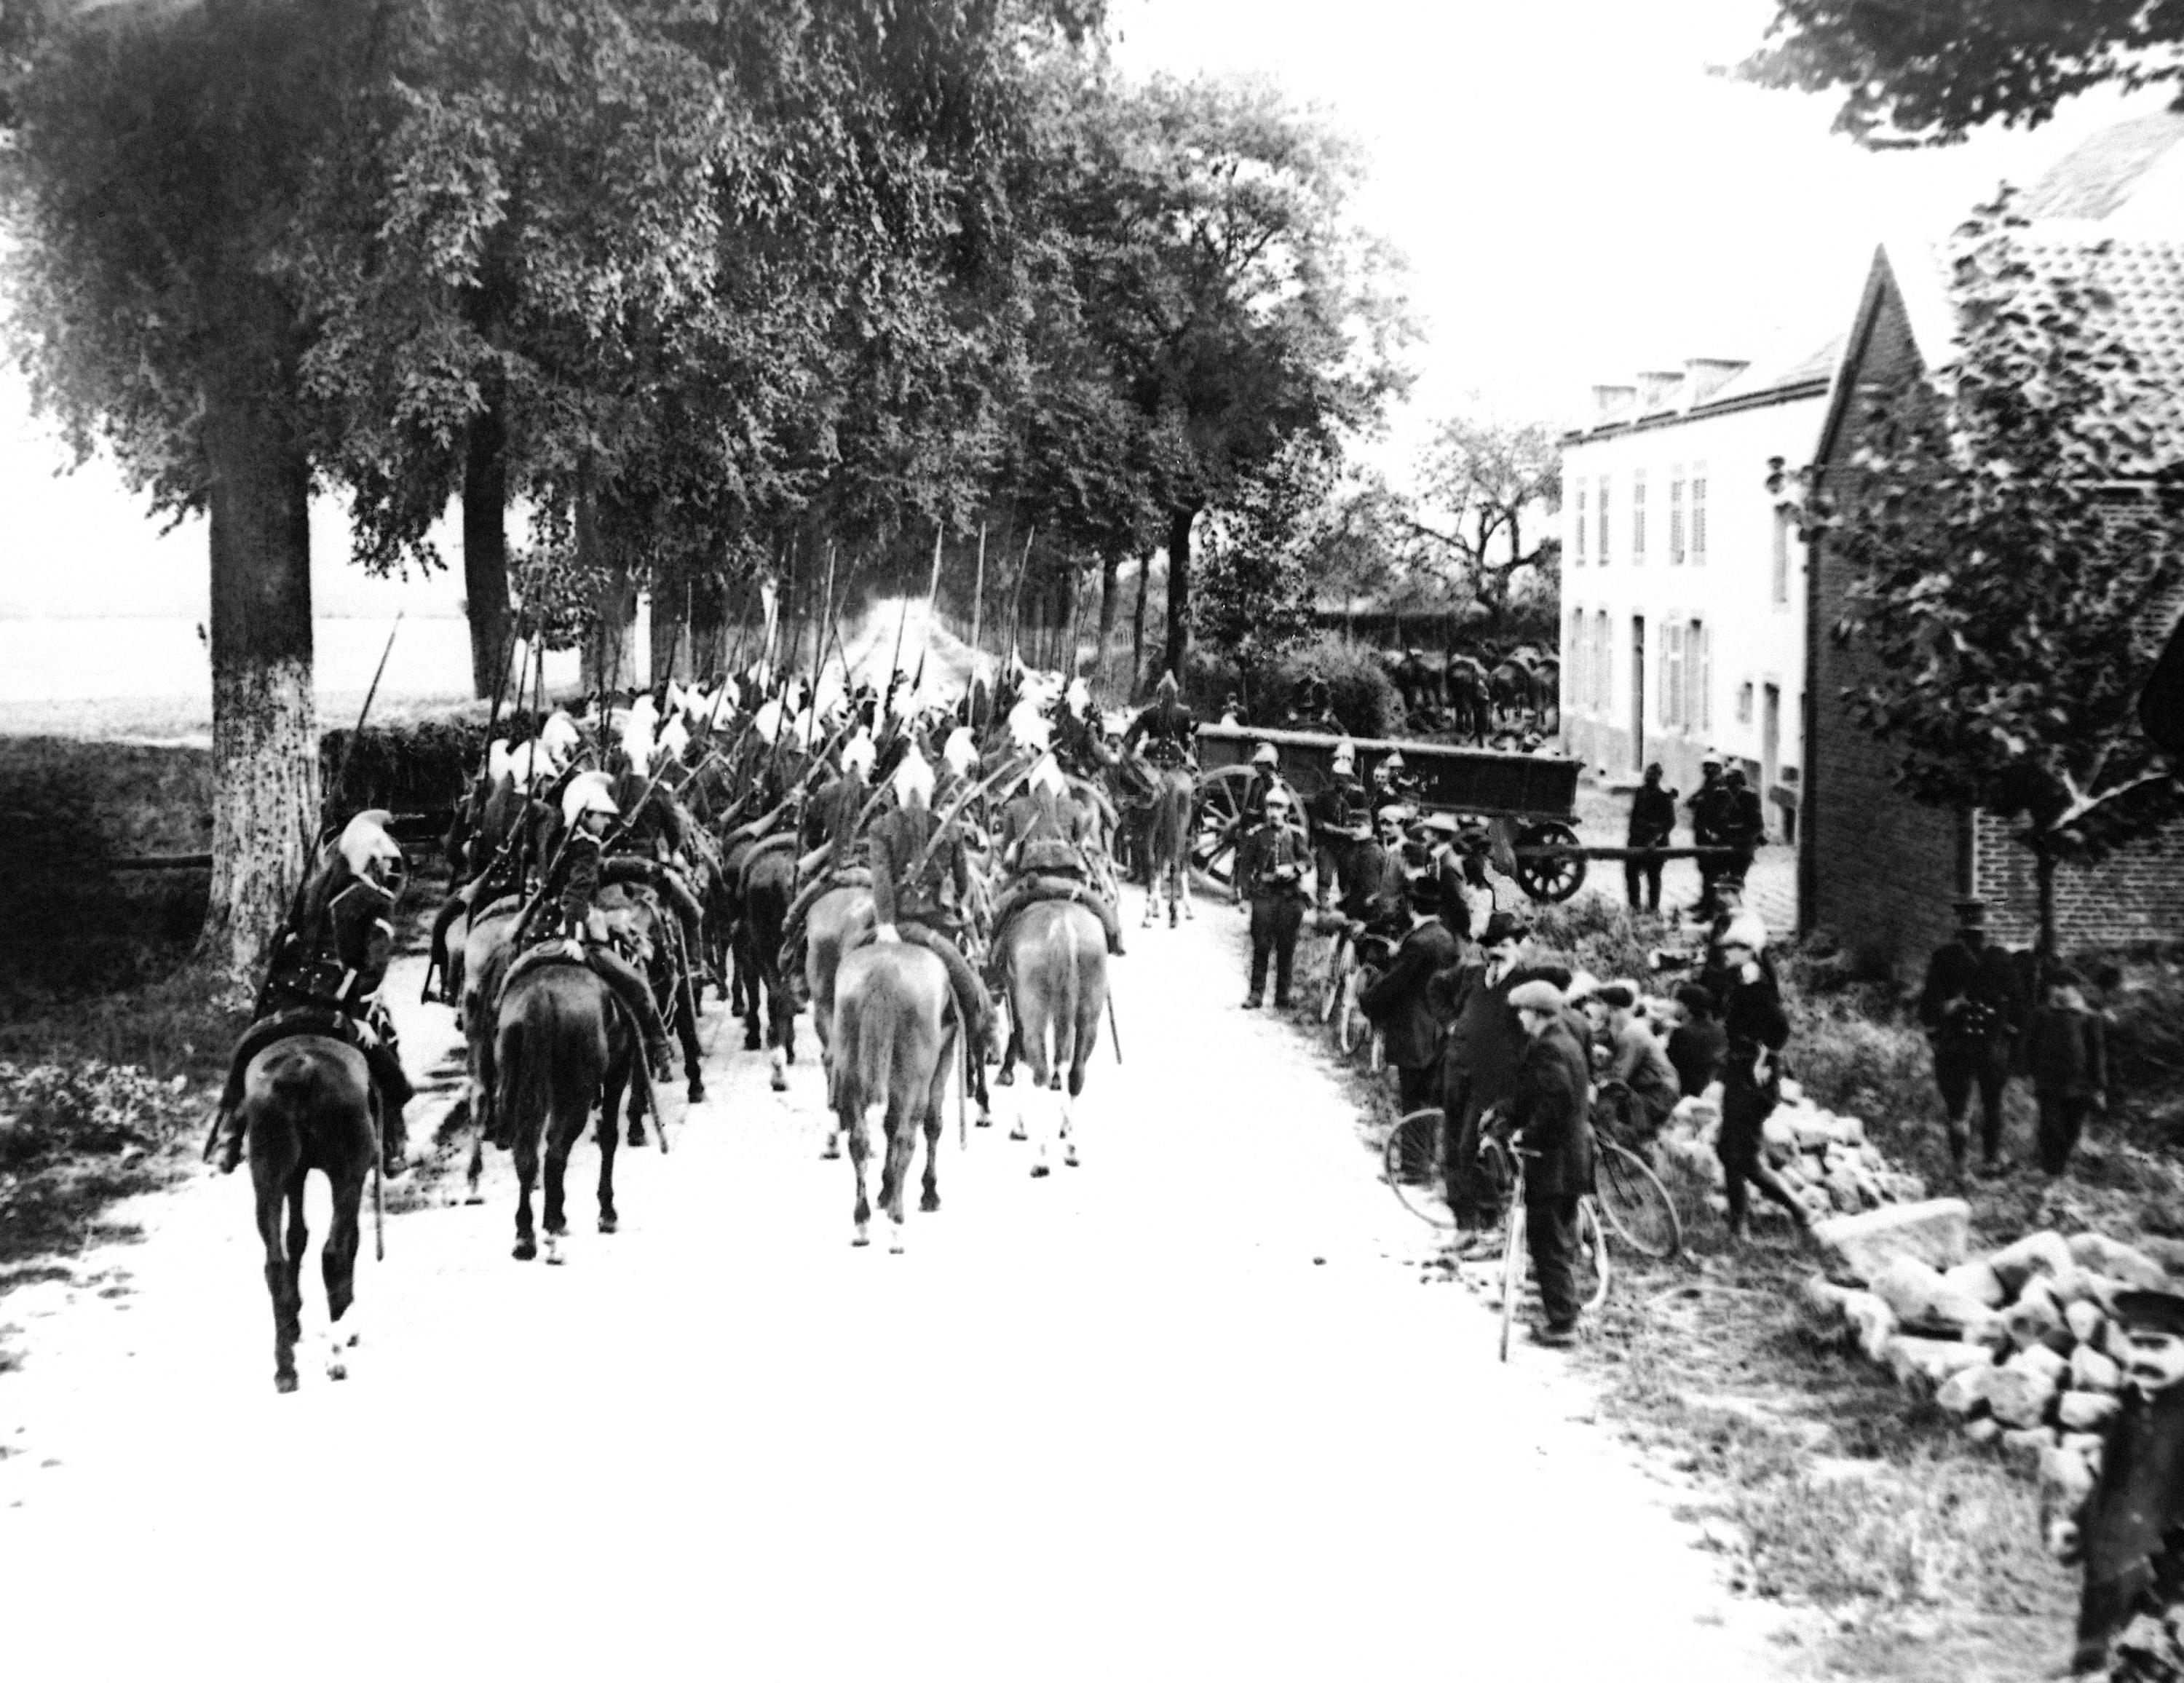 FILE - Lancers on horseback enter a Belgium village in the first days of the war on the Western Front in a 1914 photo. They were messengers, spies, sentinels and the heavy haulers of World War I, carrying supplies, munitions and food and leading cavalry charges. The horses, mules, dogs and pigeons were a vital part of the Allied war machine, saving countless lives _ and dying by the millions. (AP Photo, File)